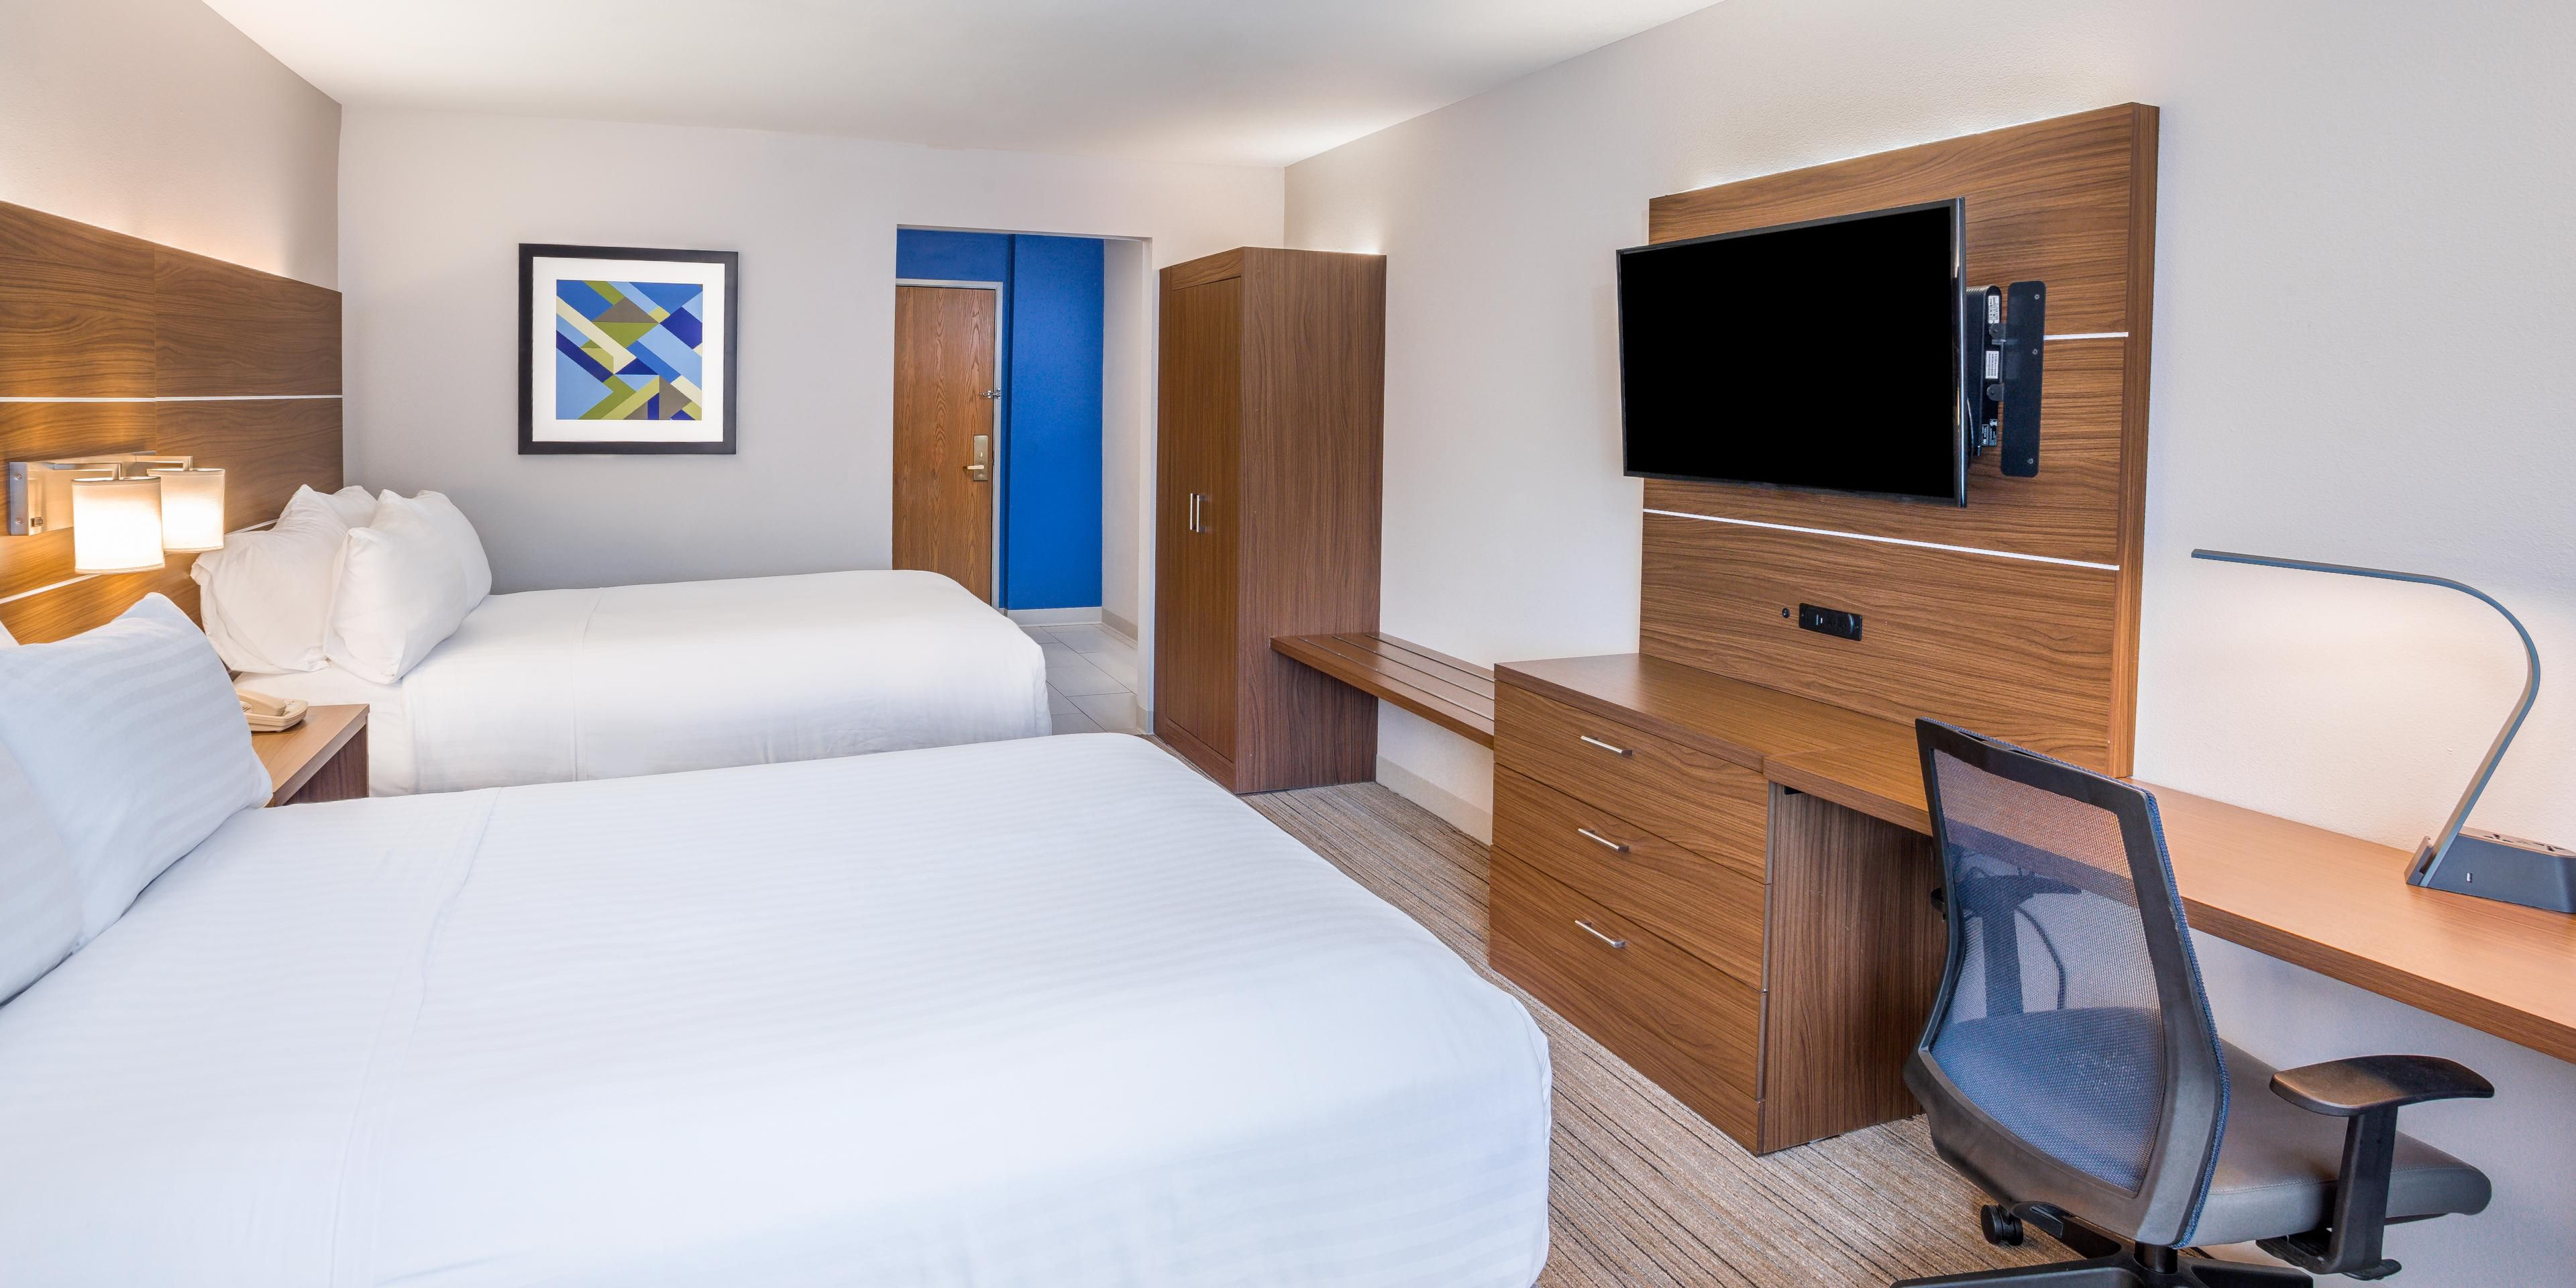 Holiday Inn Express Wisconsin Dells 5469318914 2x1